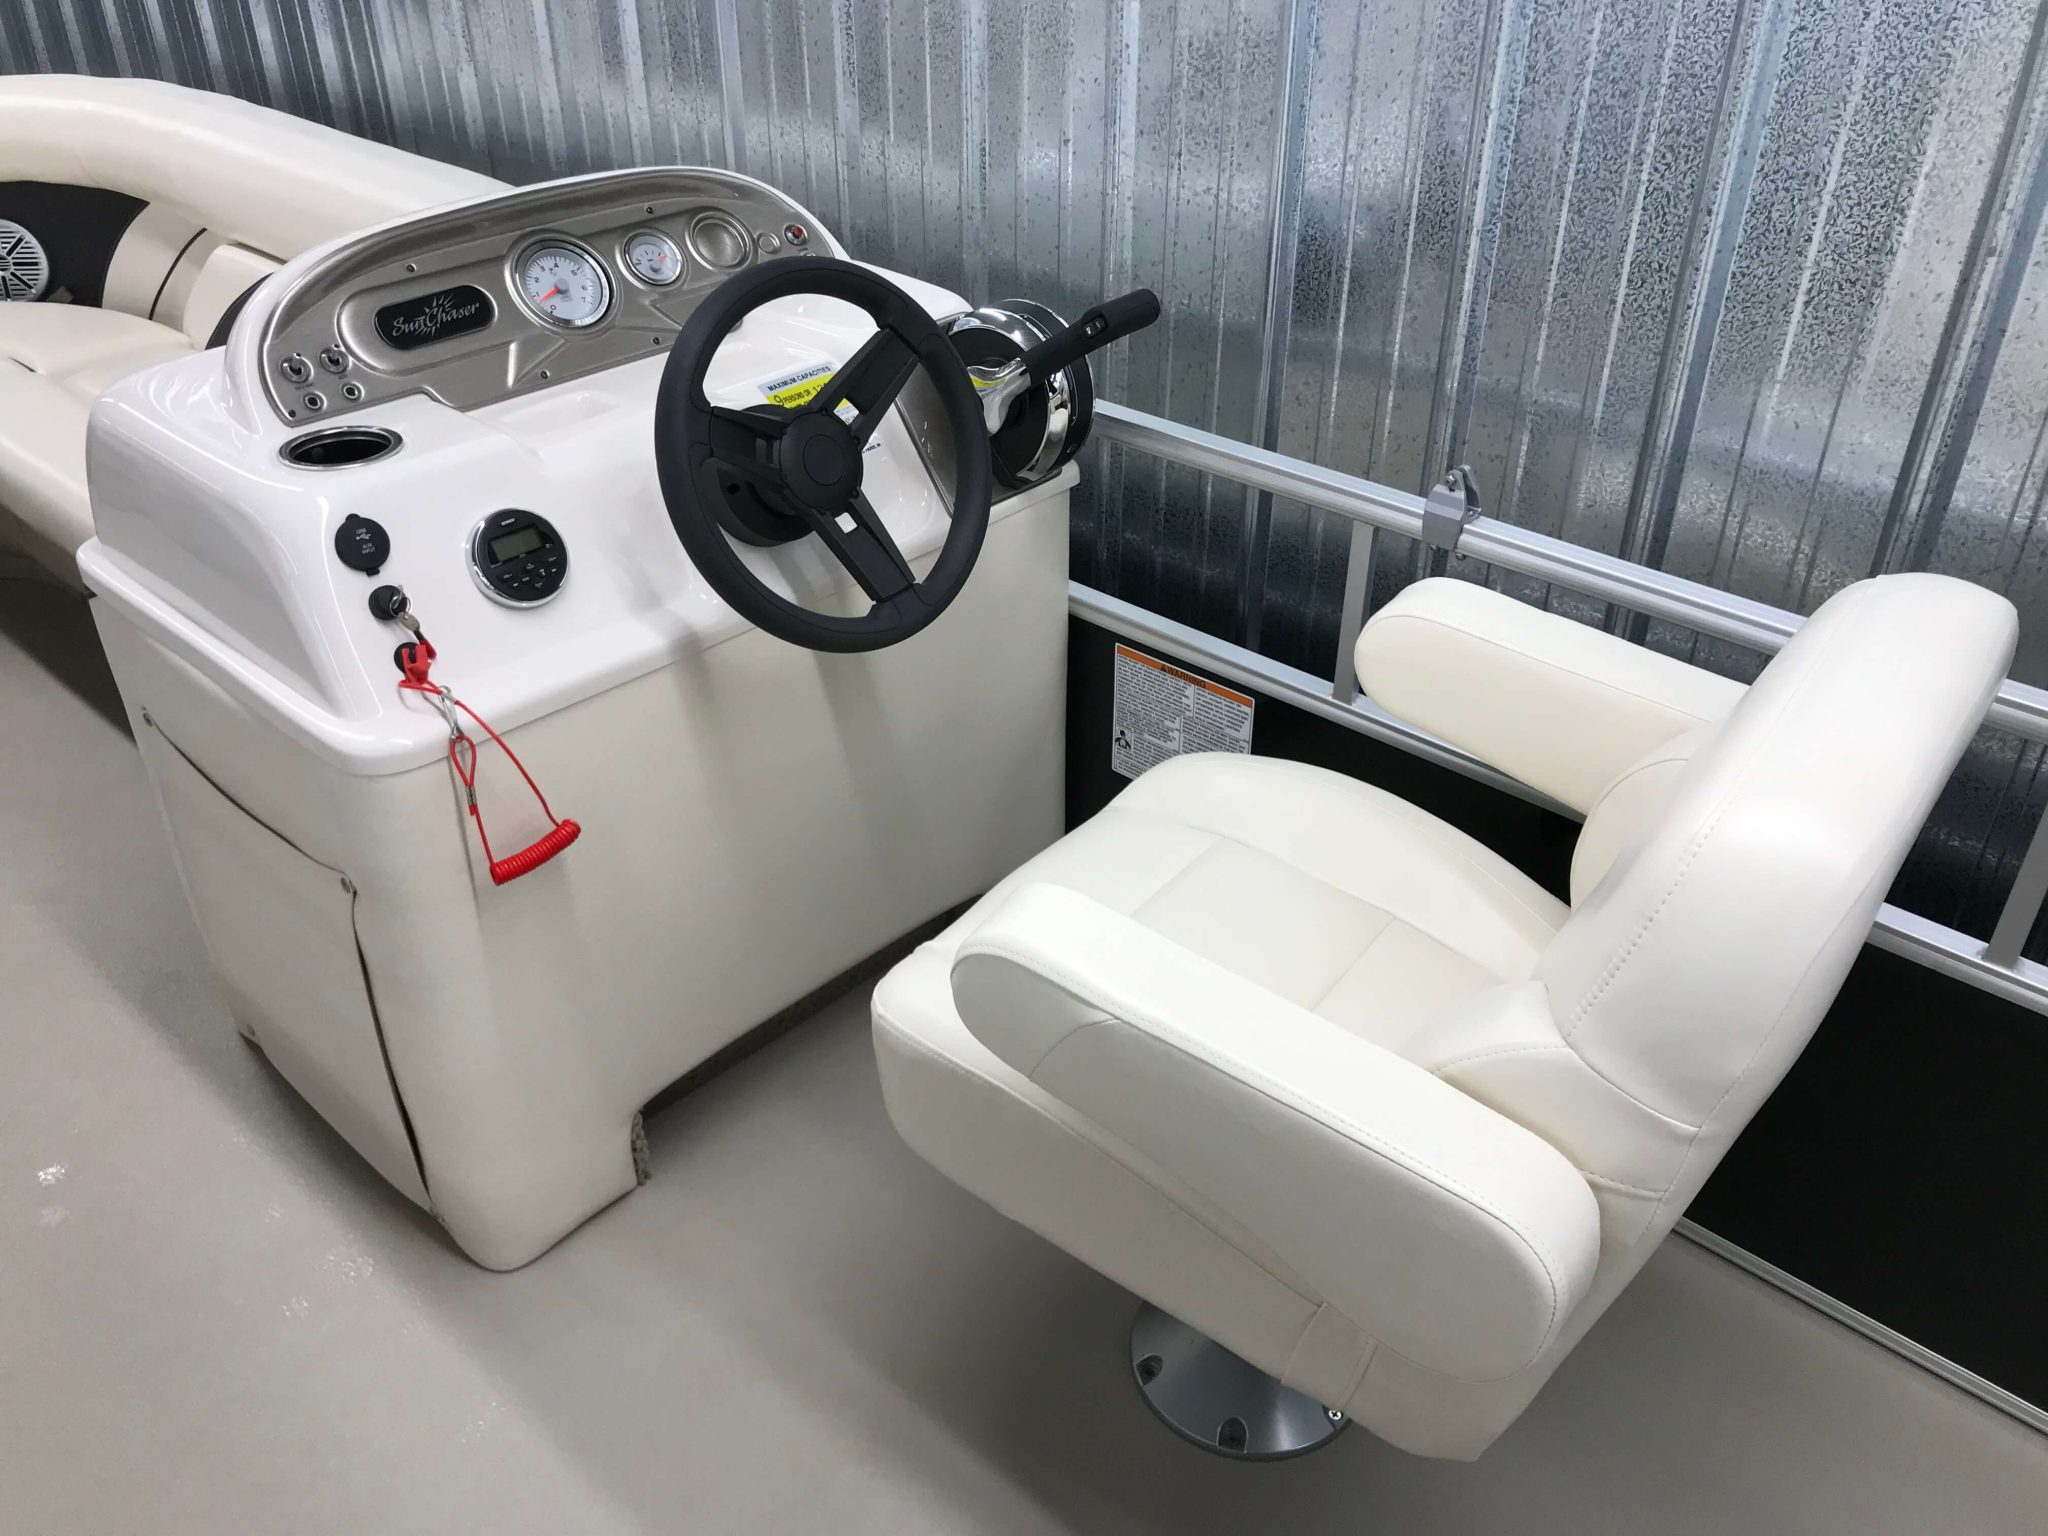 2019 SunChaser Oasis 820 Cruise Captains Chair And Helm